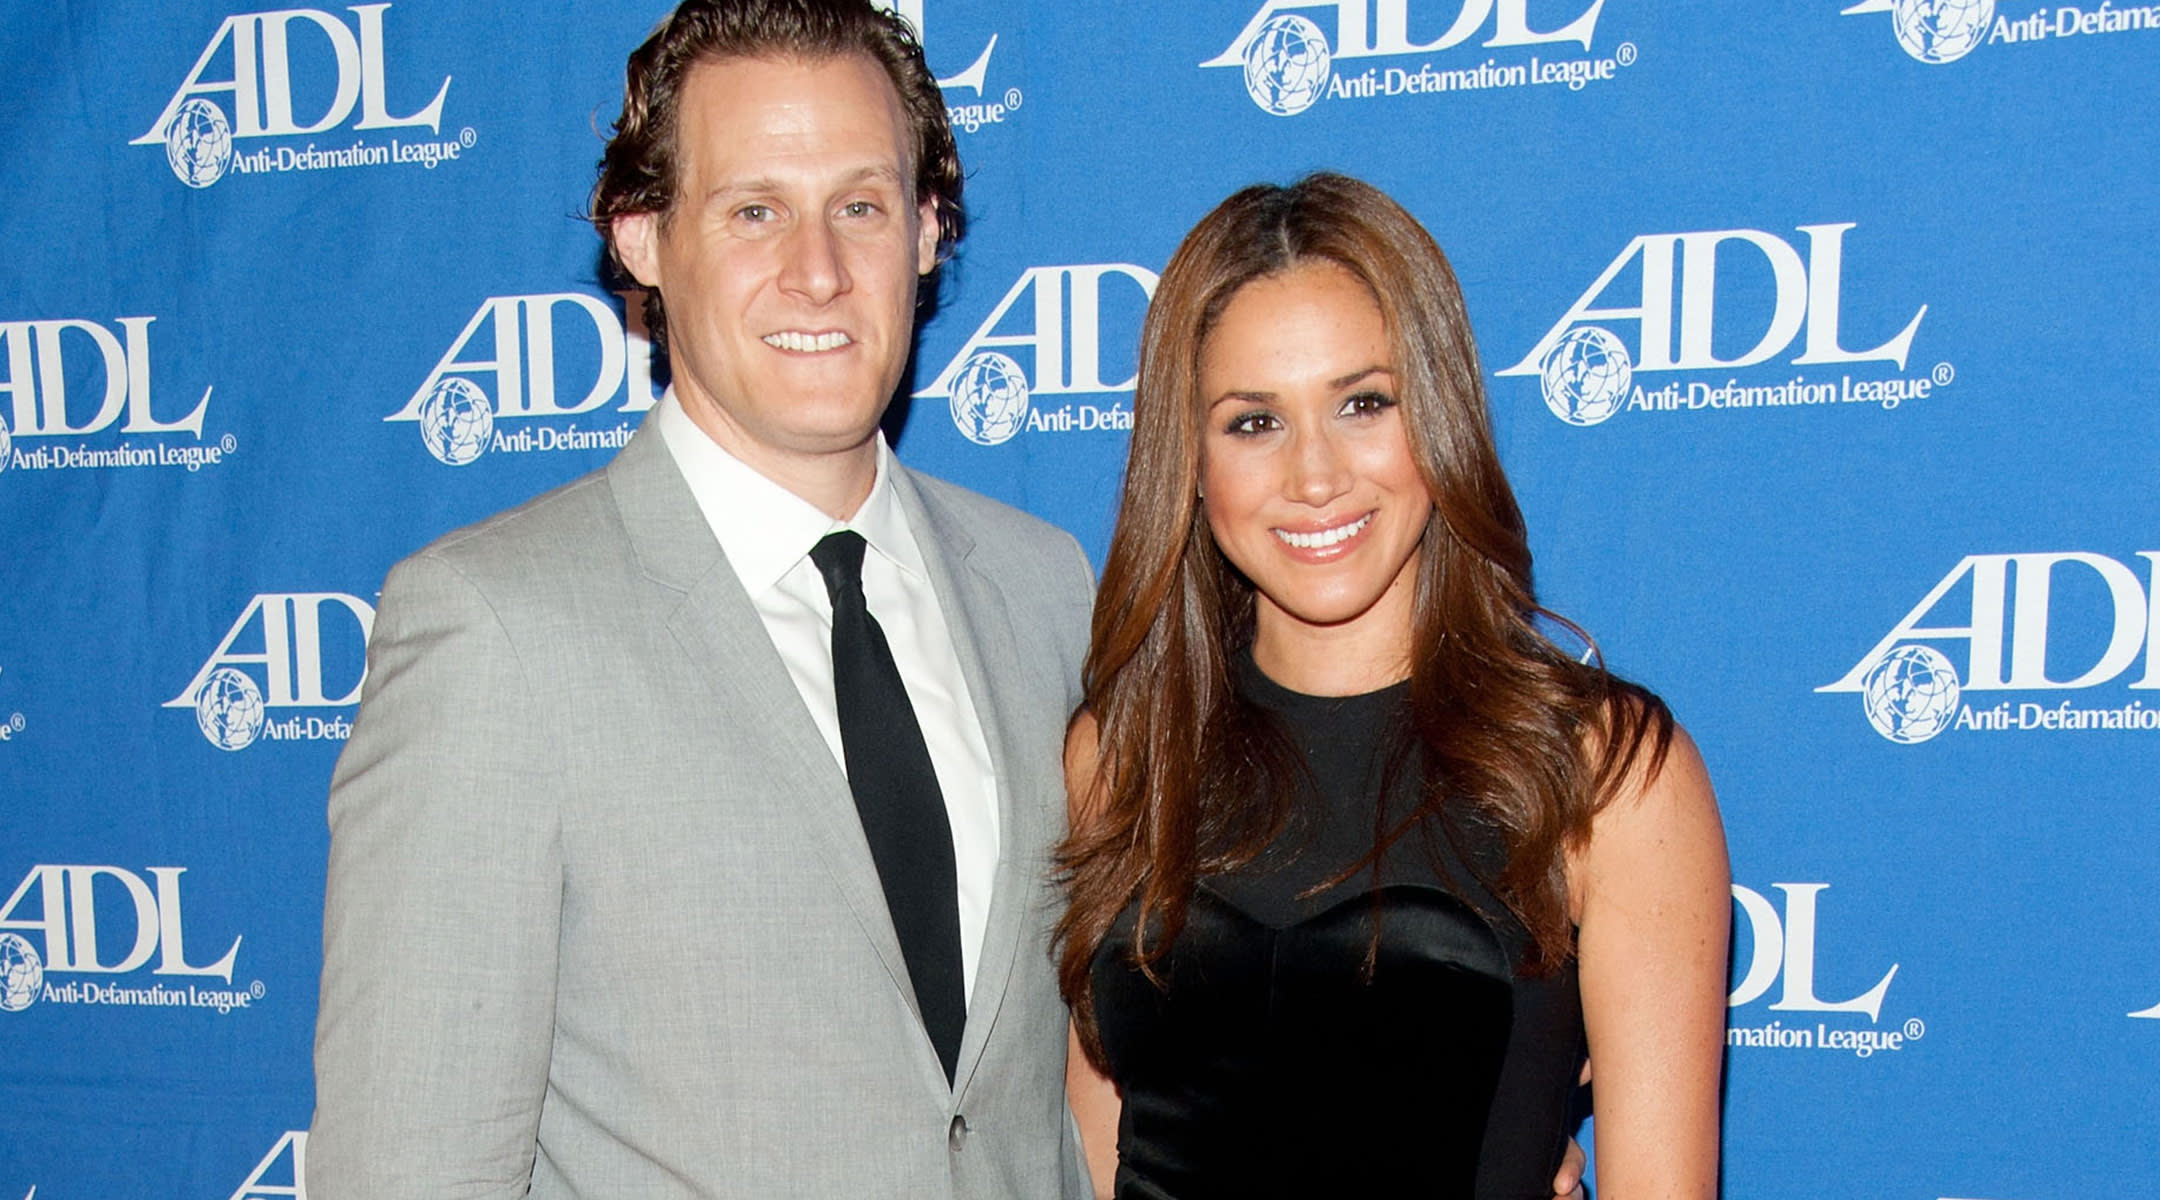 meghan markle ex-husband trevor engelson red carpet event Anti-Defamation League Entertainment Industry Awards Dinner